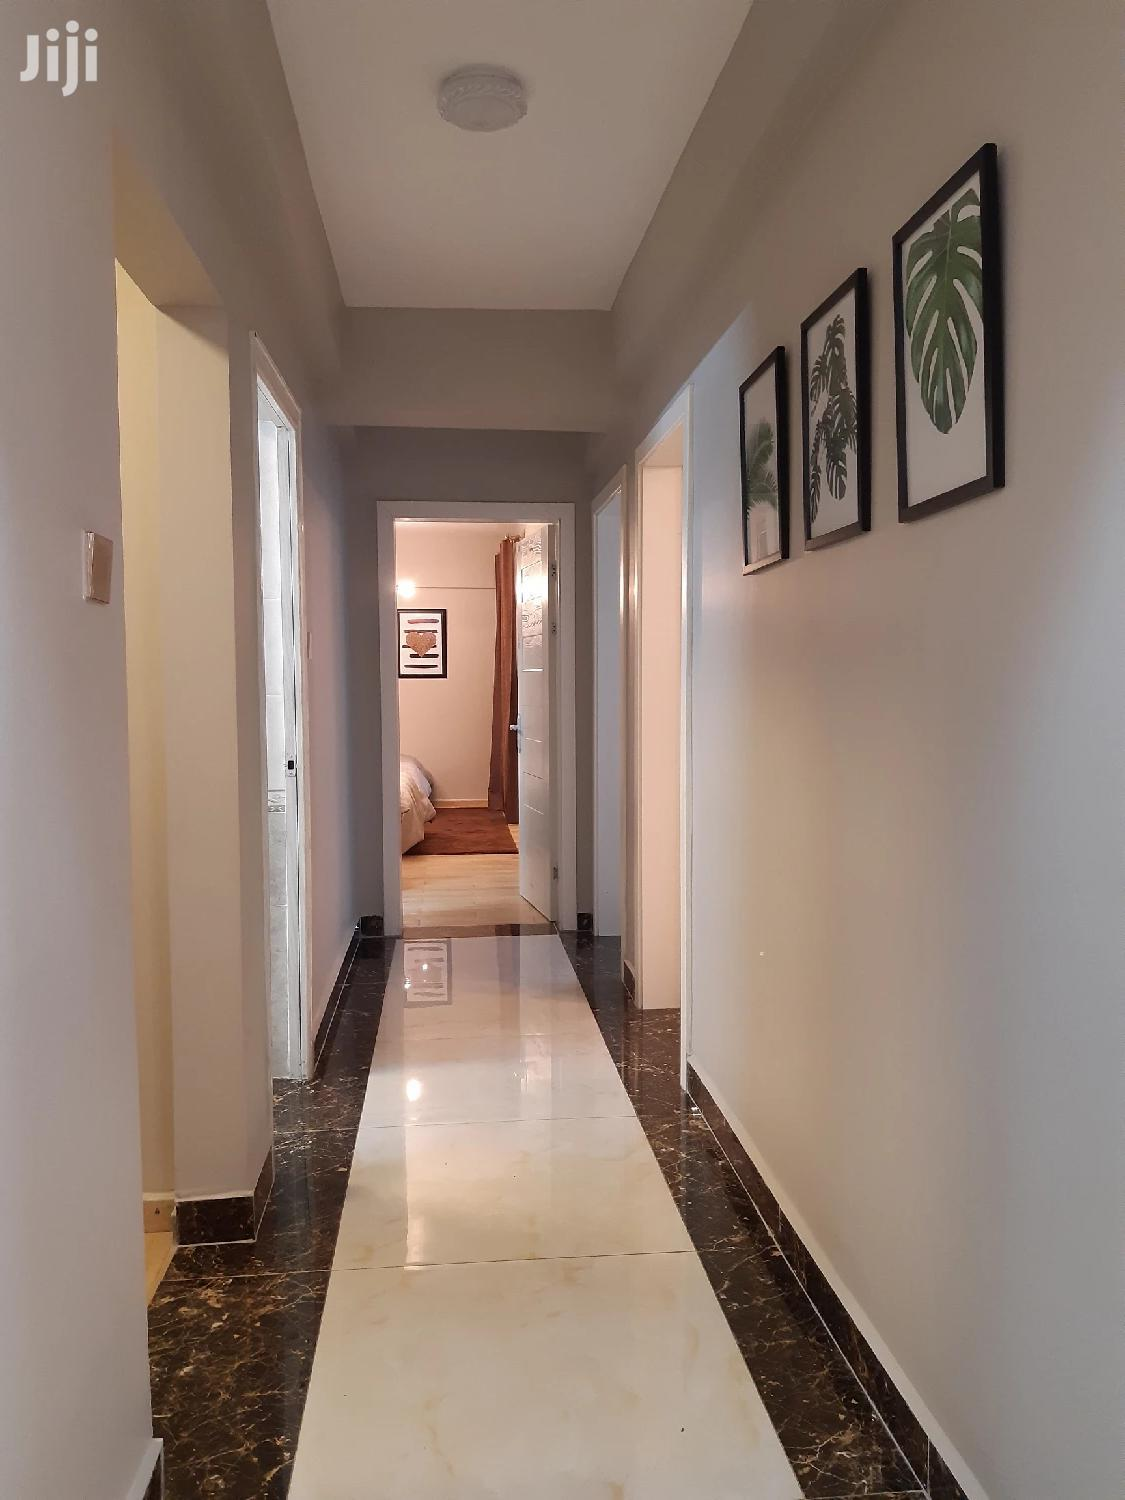 New Executive 3 Bedroom Apartment Quick Sale Cash | Houses & Apartments For Sale for sale in Kilimani, Nairobi, Kenya